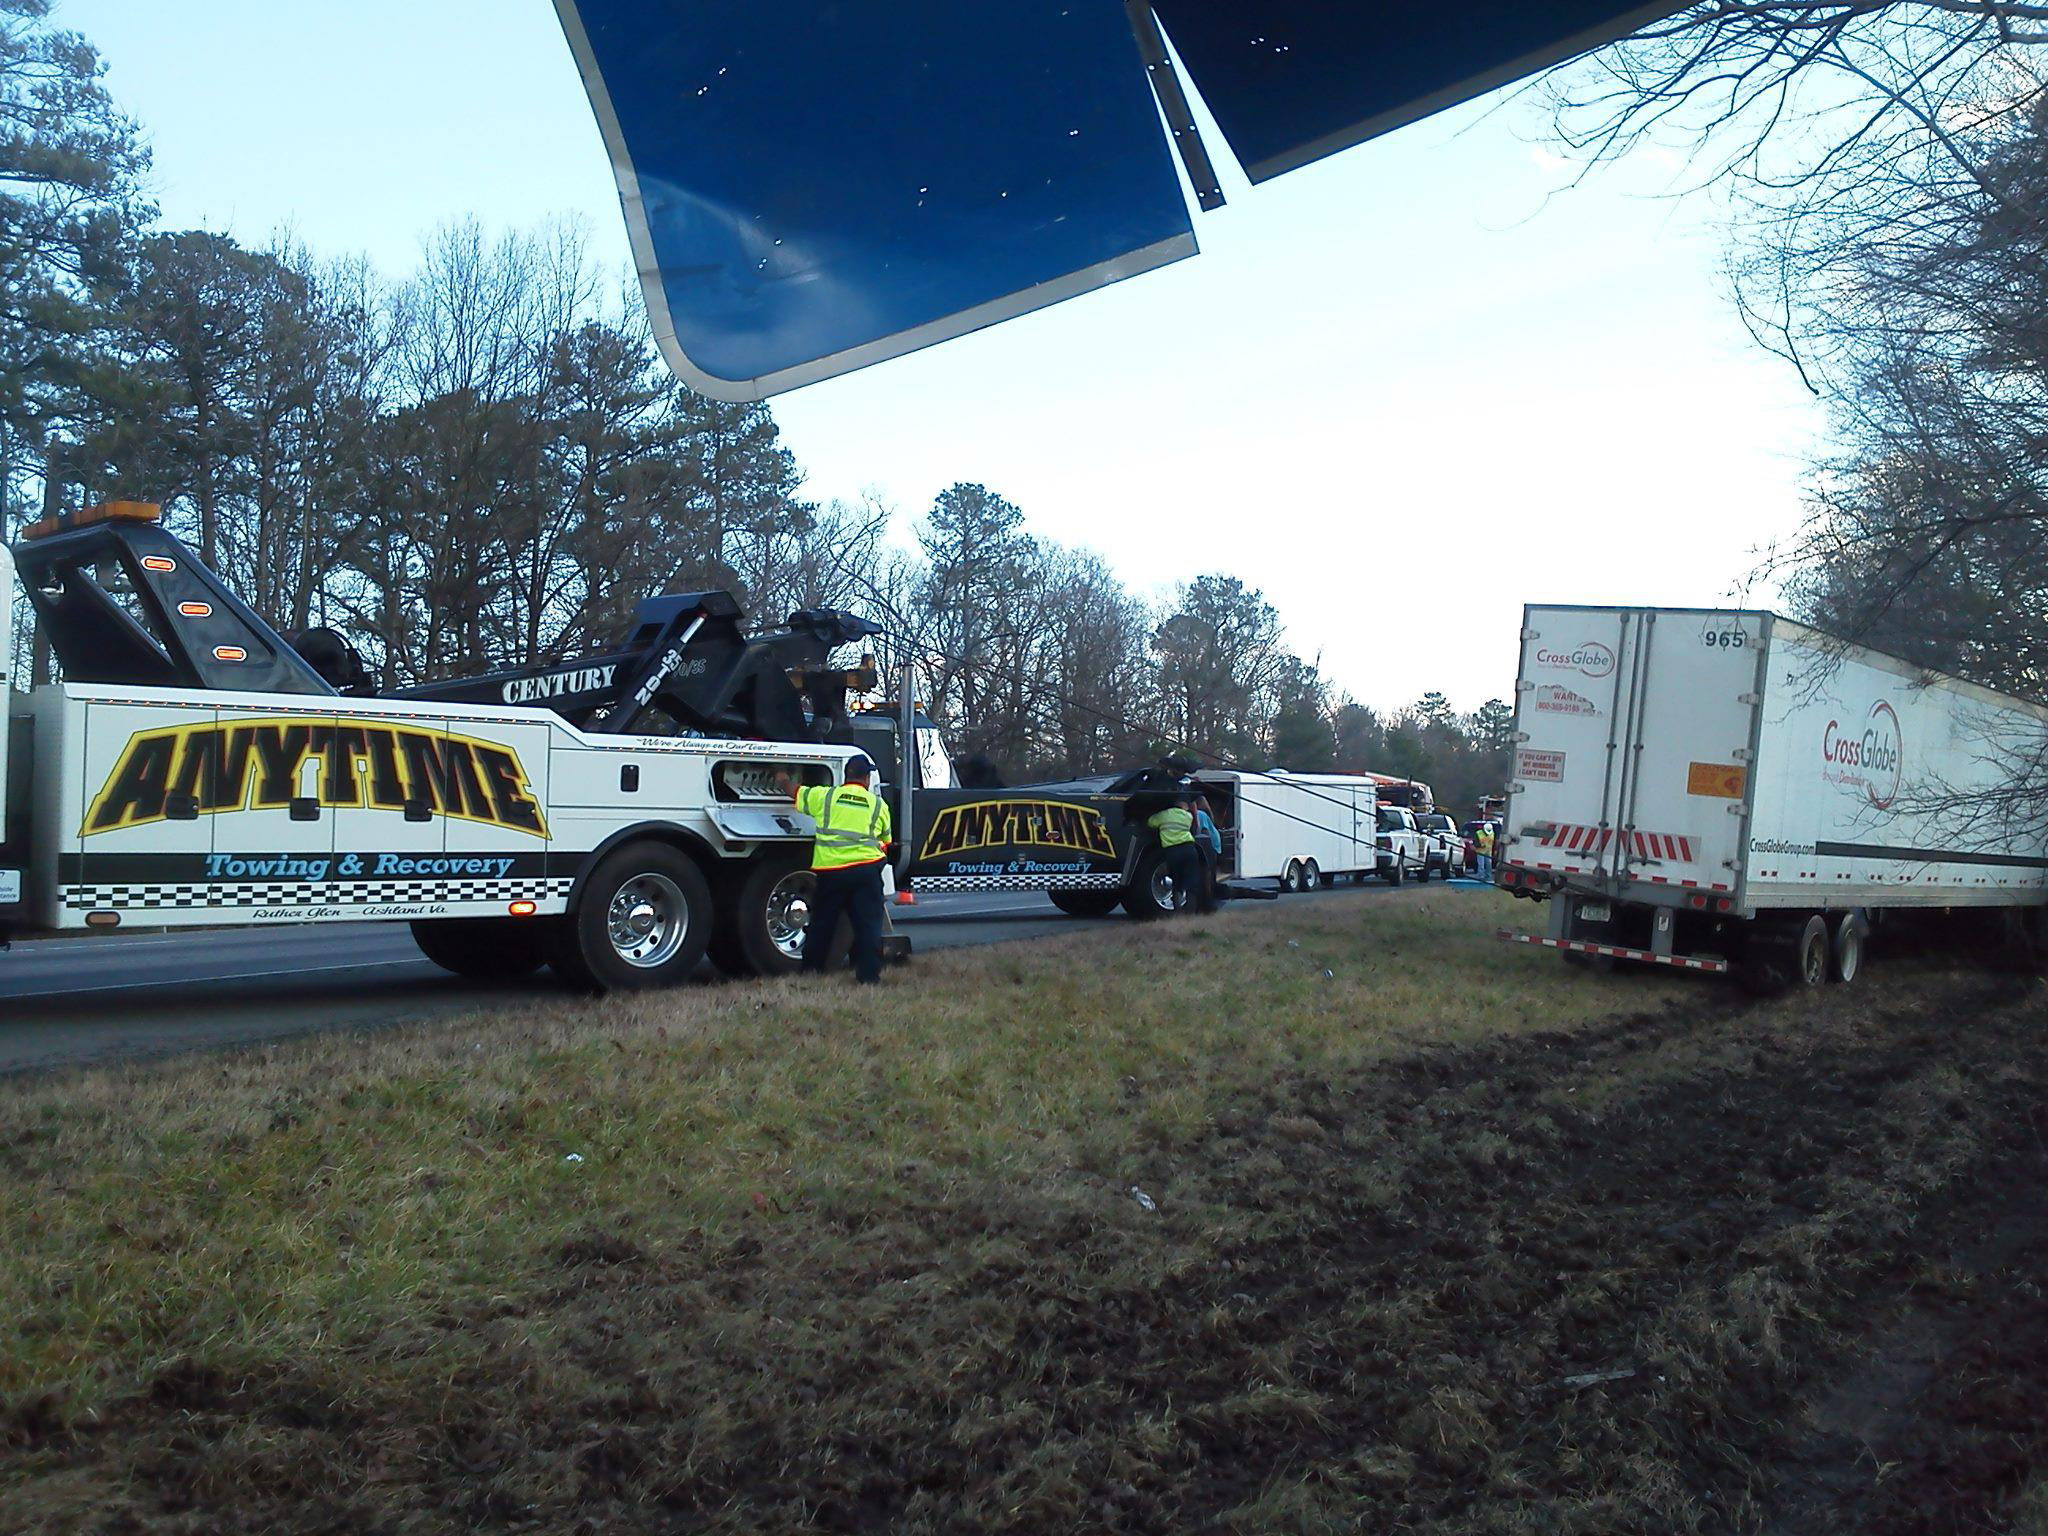 anytime towing roadside service